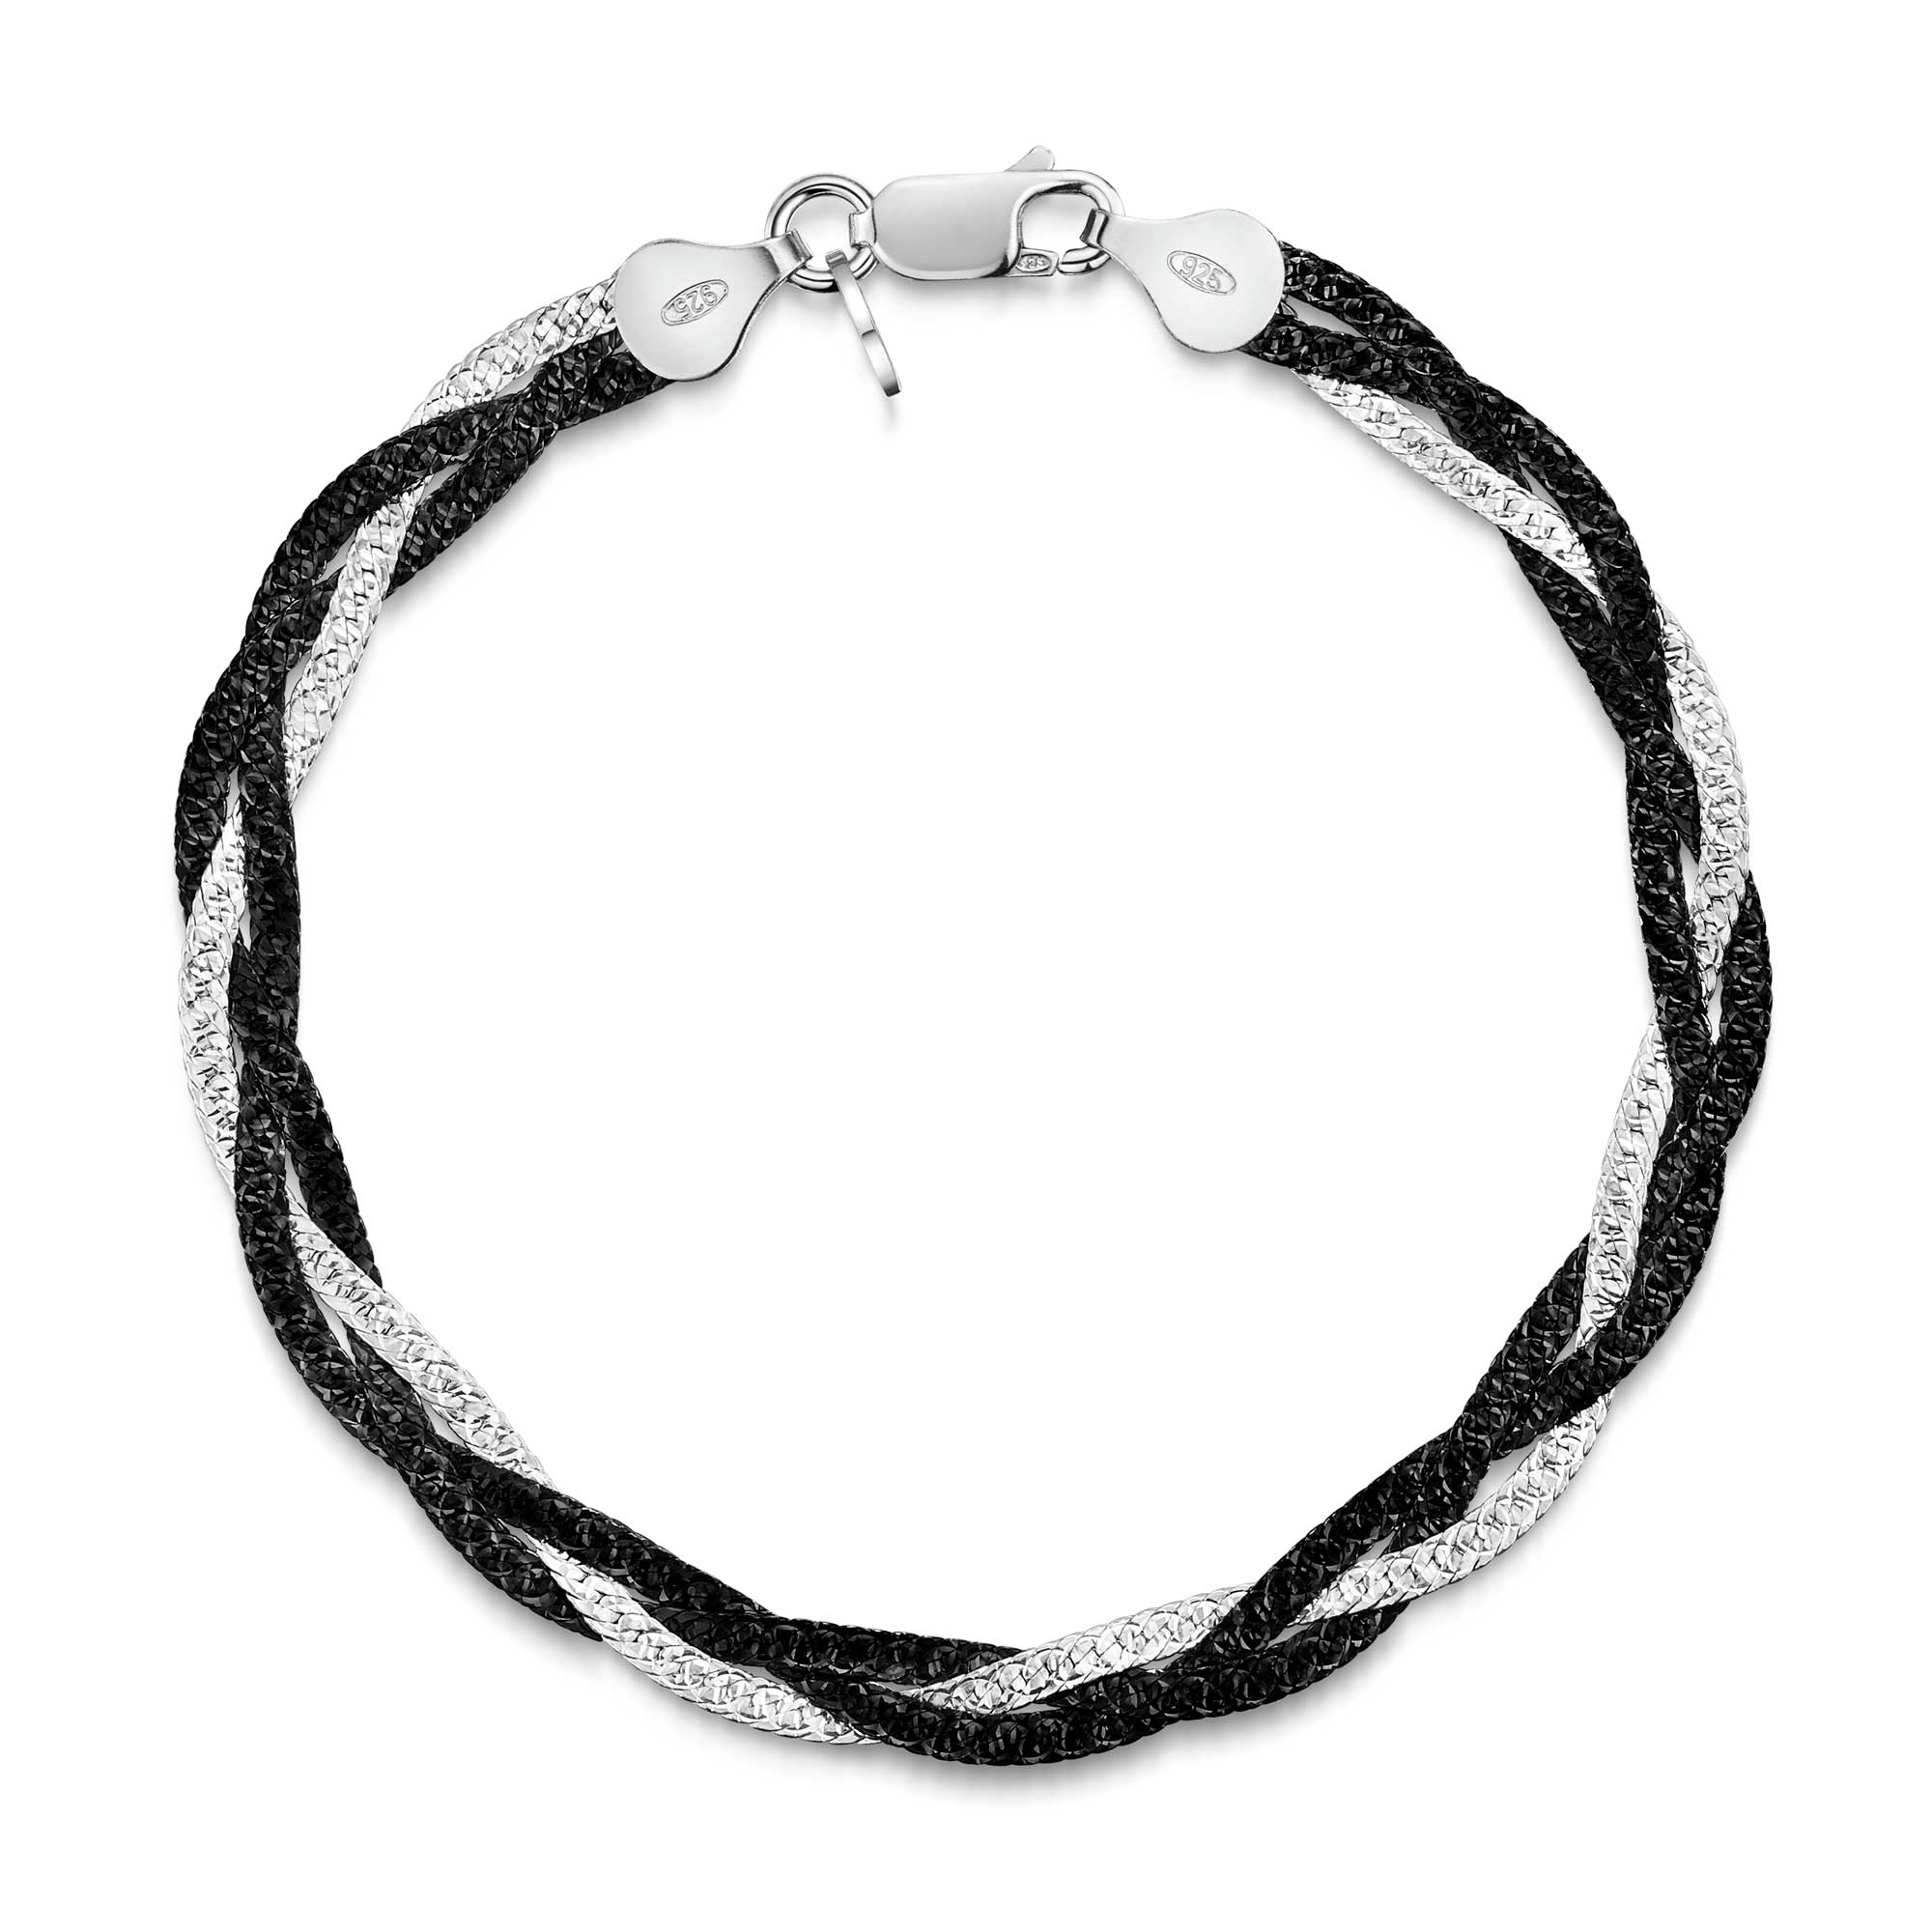 Amberta Black and Silver Herringbone Bracelet